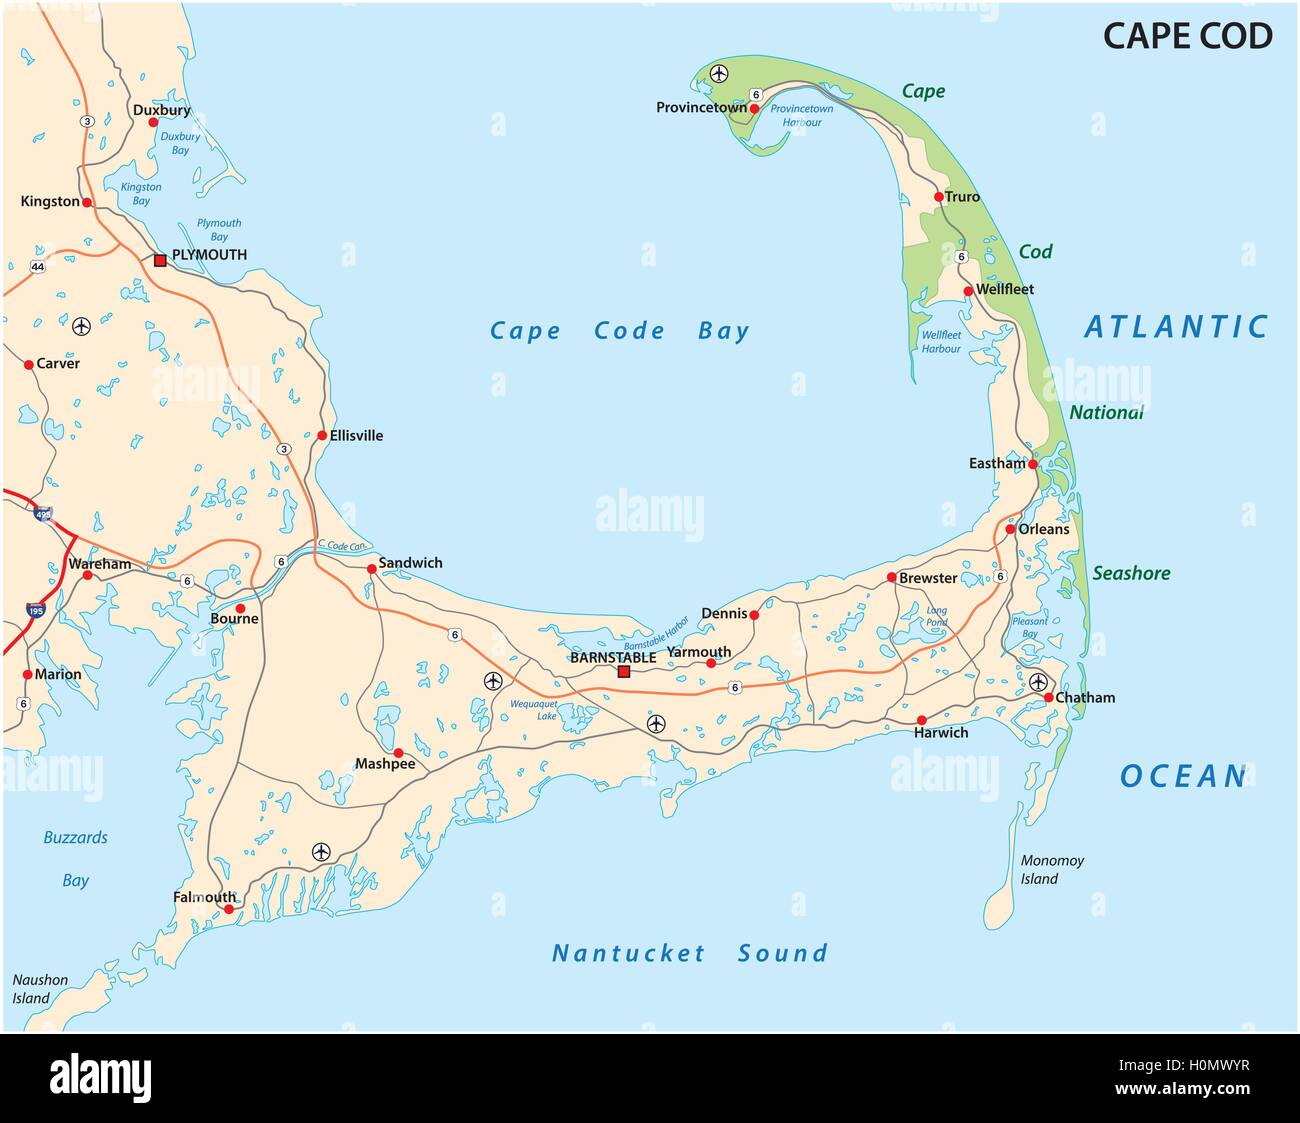 cape cod road map Stock Vector Art & Illustration, Vector Image ...